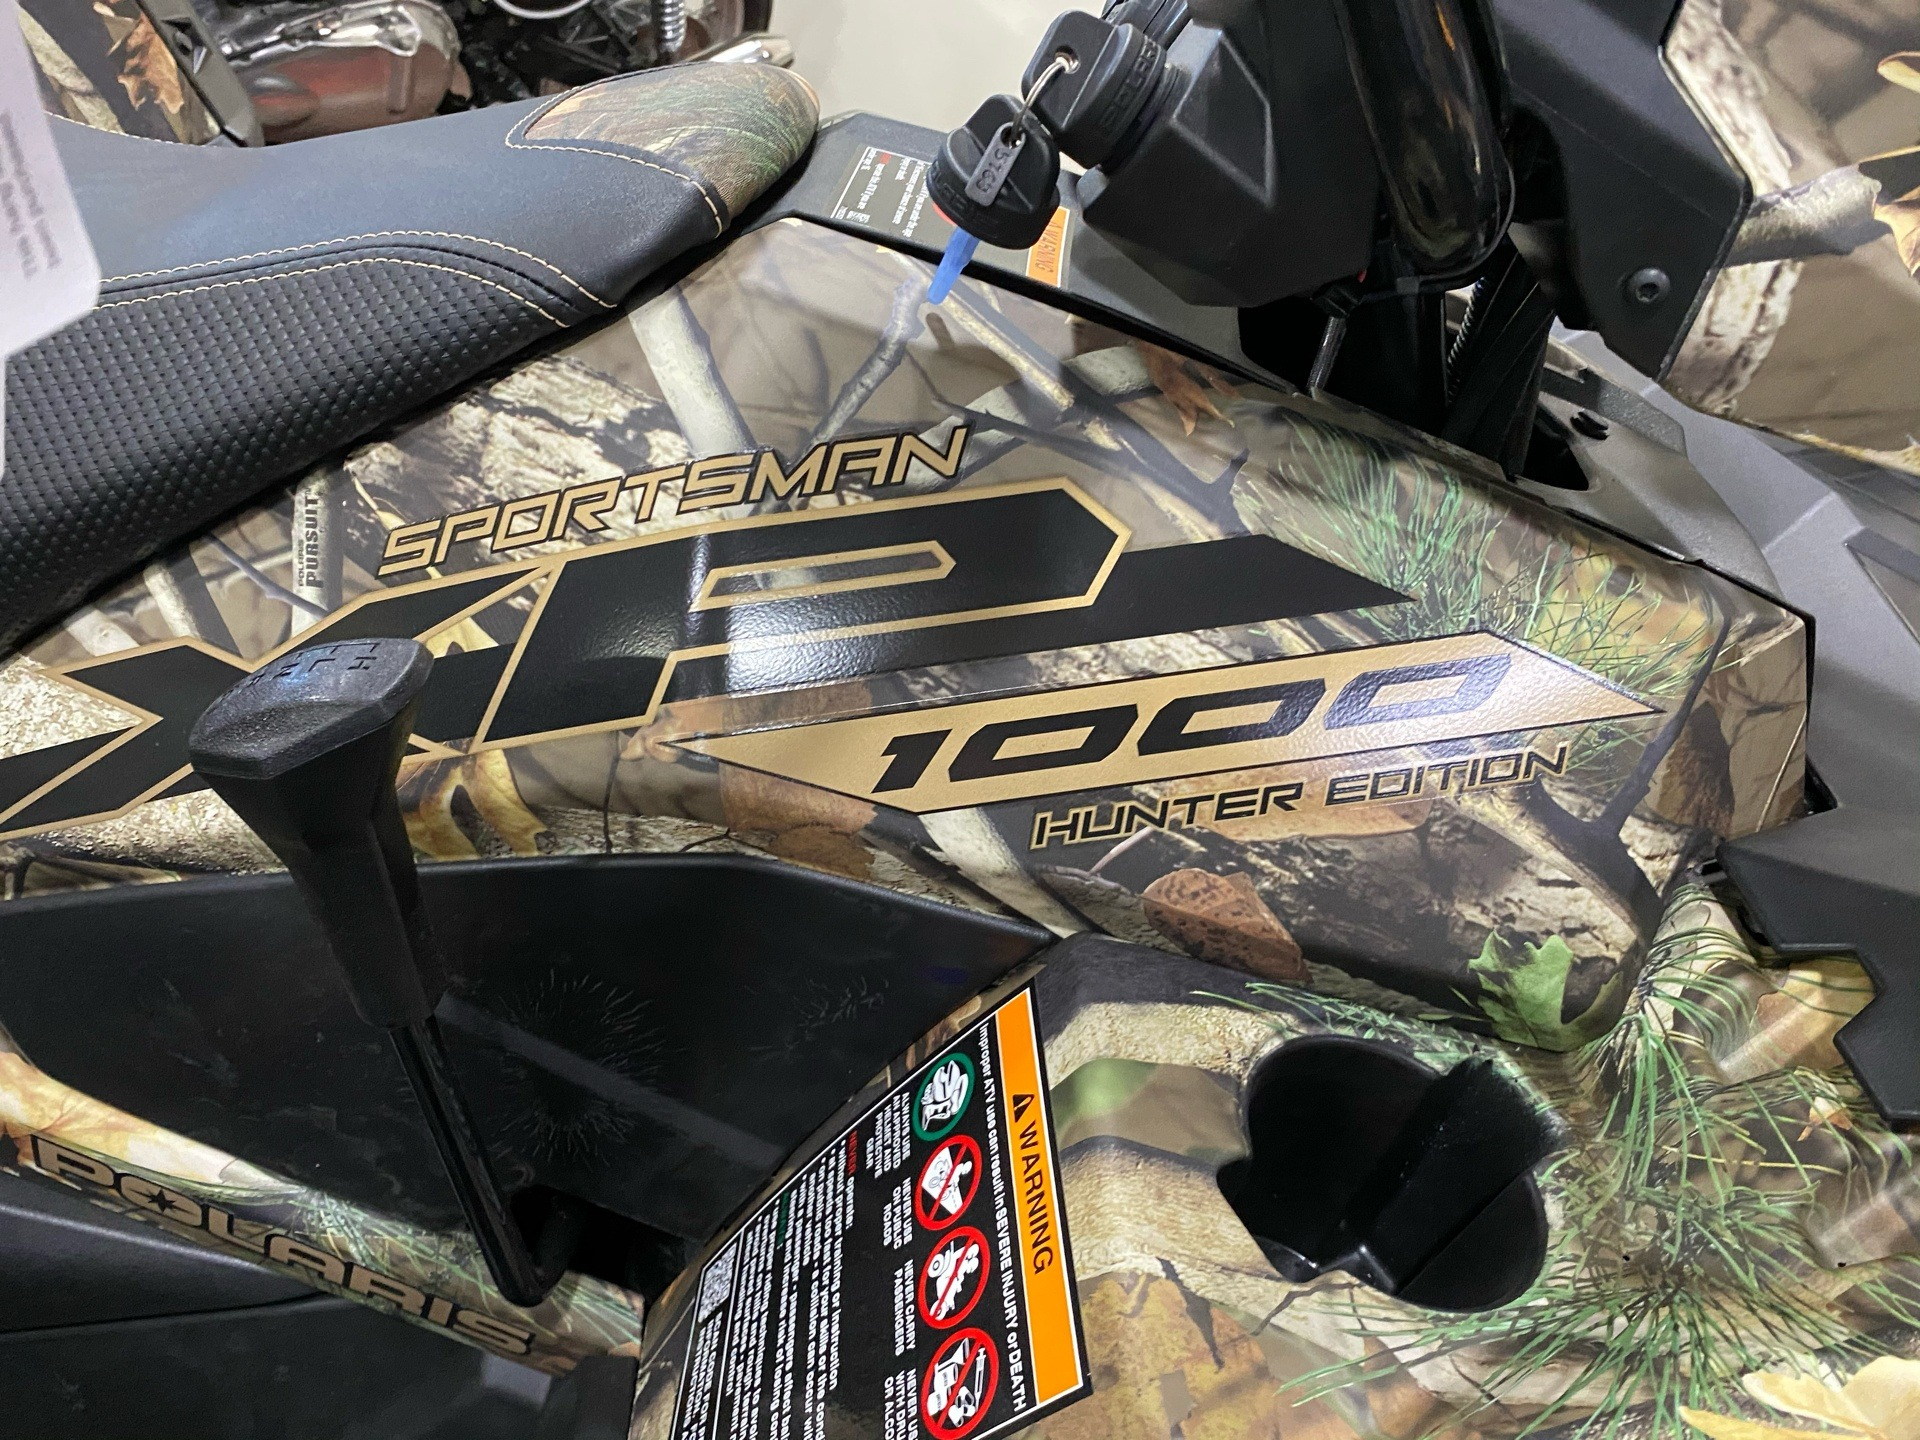 2021 Polaris Sportsman XP 1000 Hunt Edition in Statesville, North Carolina - Photo 3